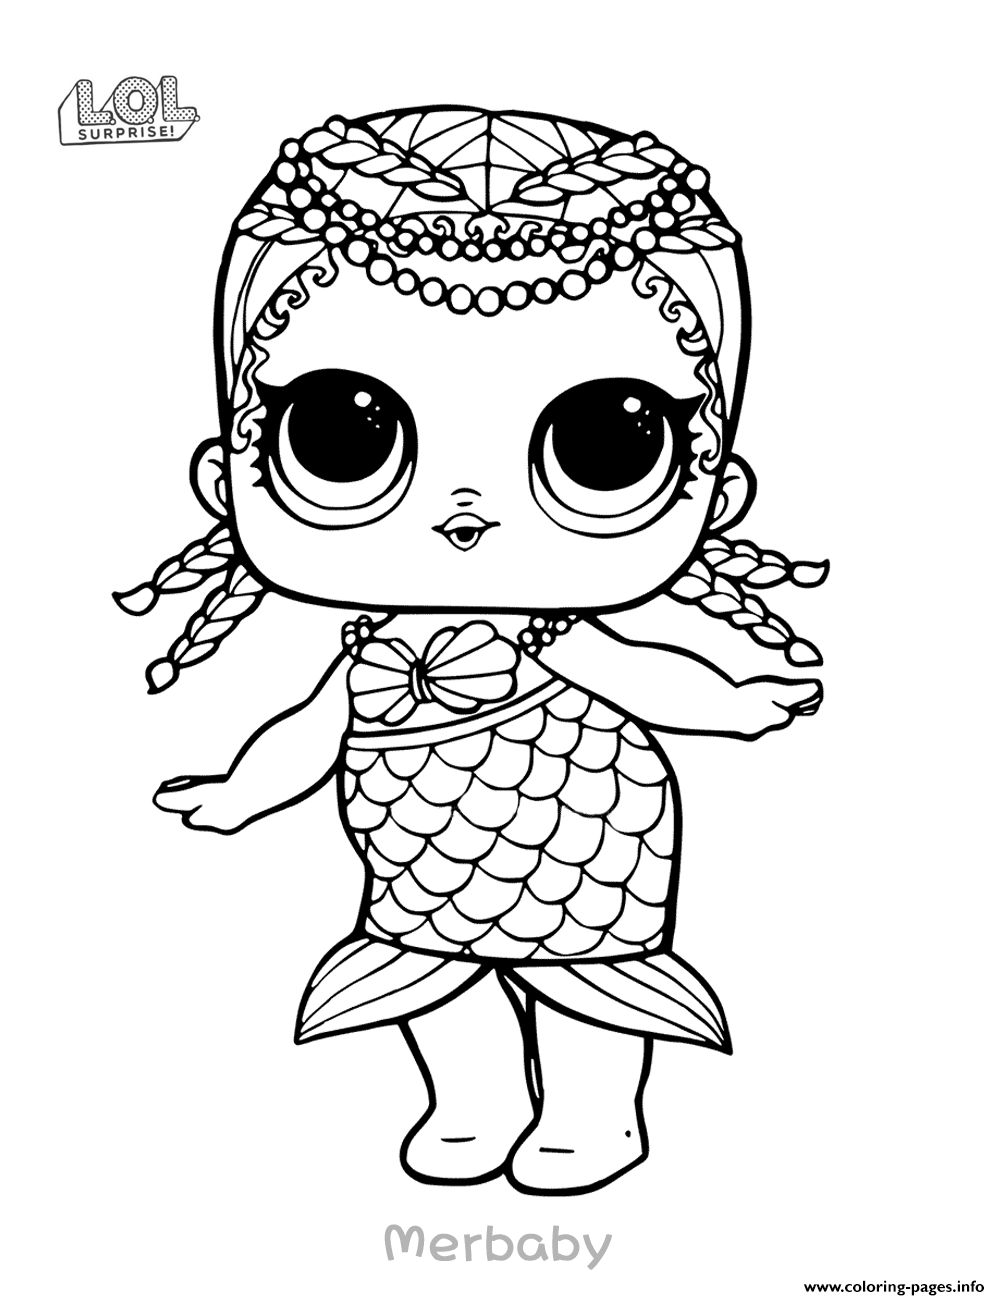 740 Top Colouring Pages Printable Lol Download Free Images